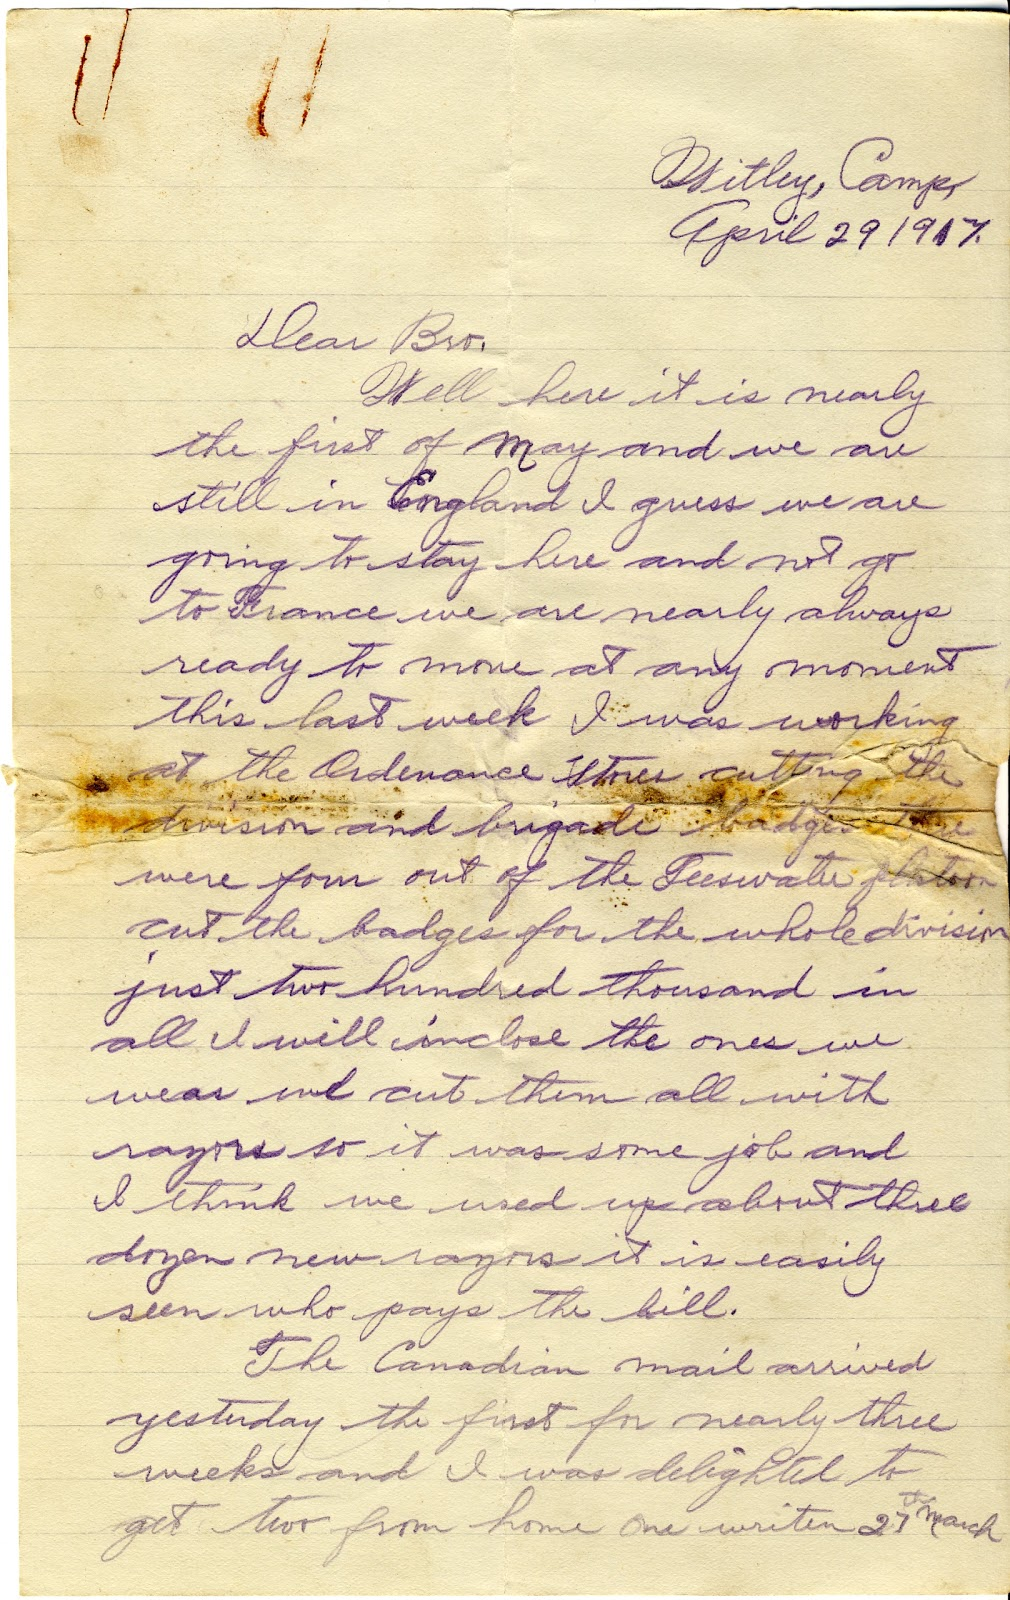 Letters From World War One April 29 1917 Witley Camp